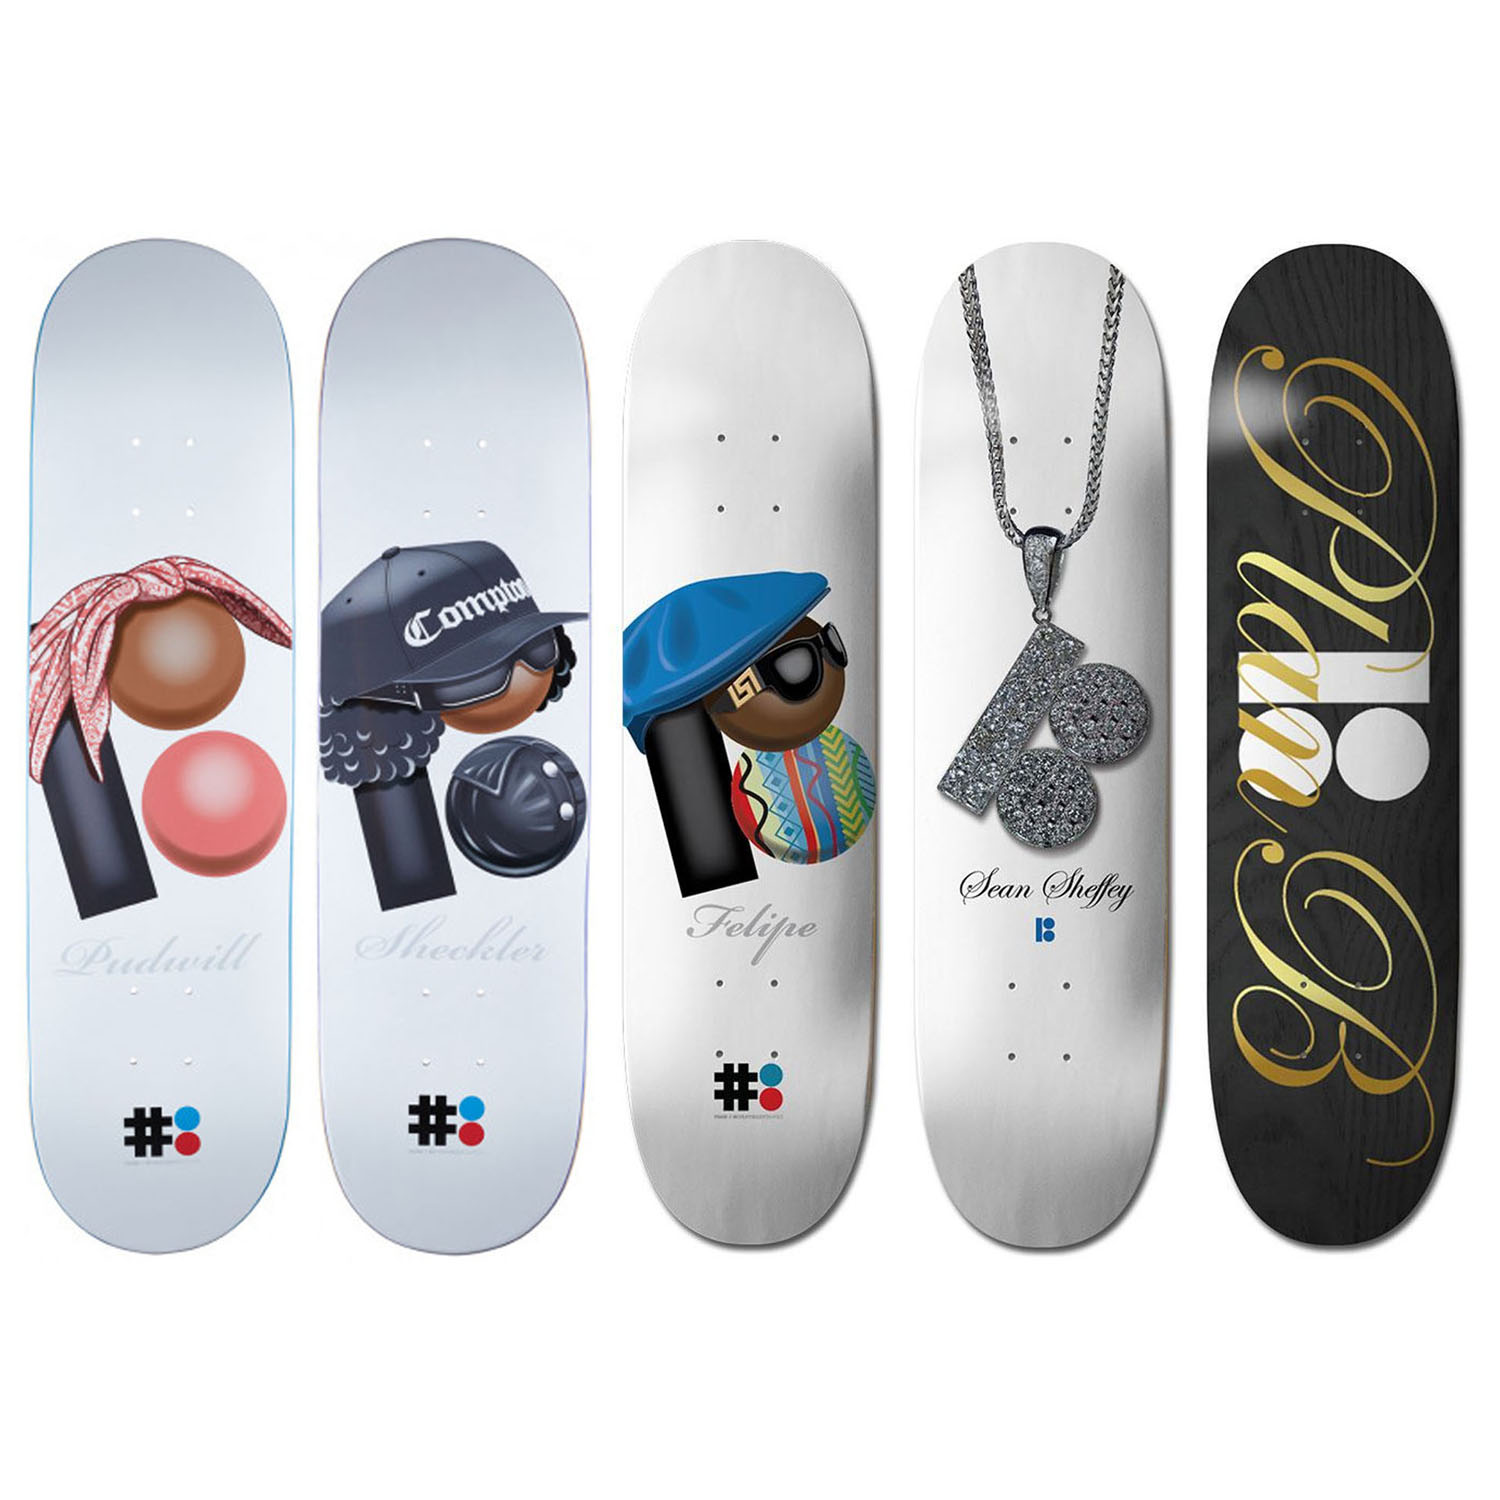 a6d514a5 With over 20,000 items in stock, we are experts on all aspects of  skateboarding, longboarding, customer services, shipping speed and bang for  your buck.